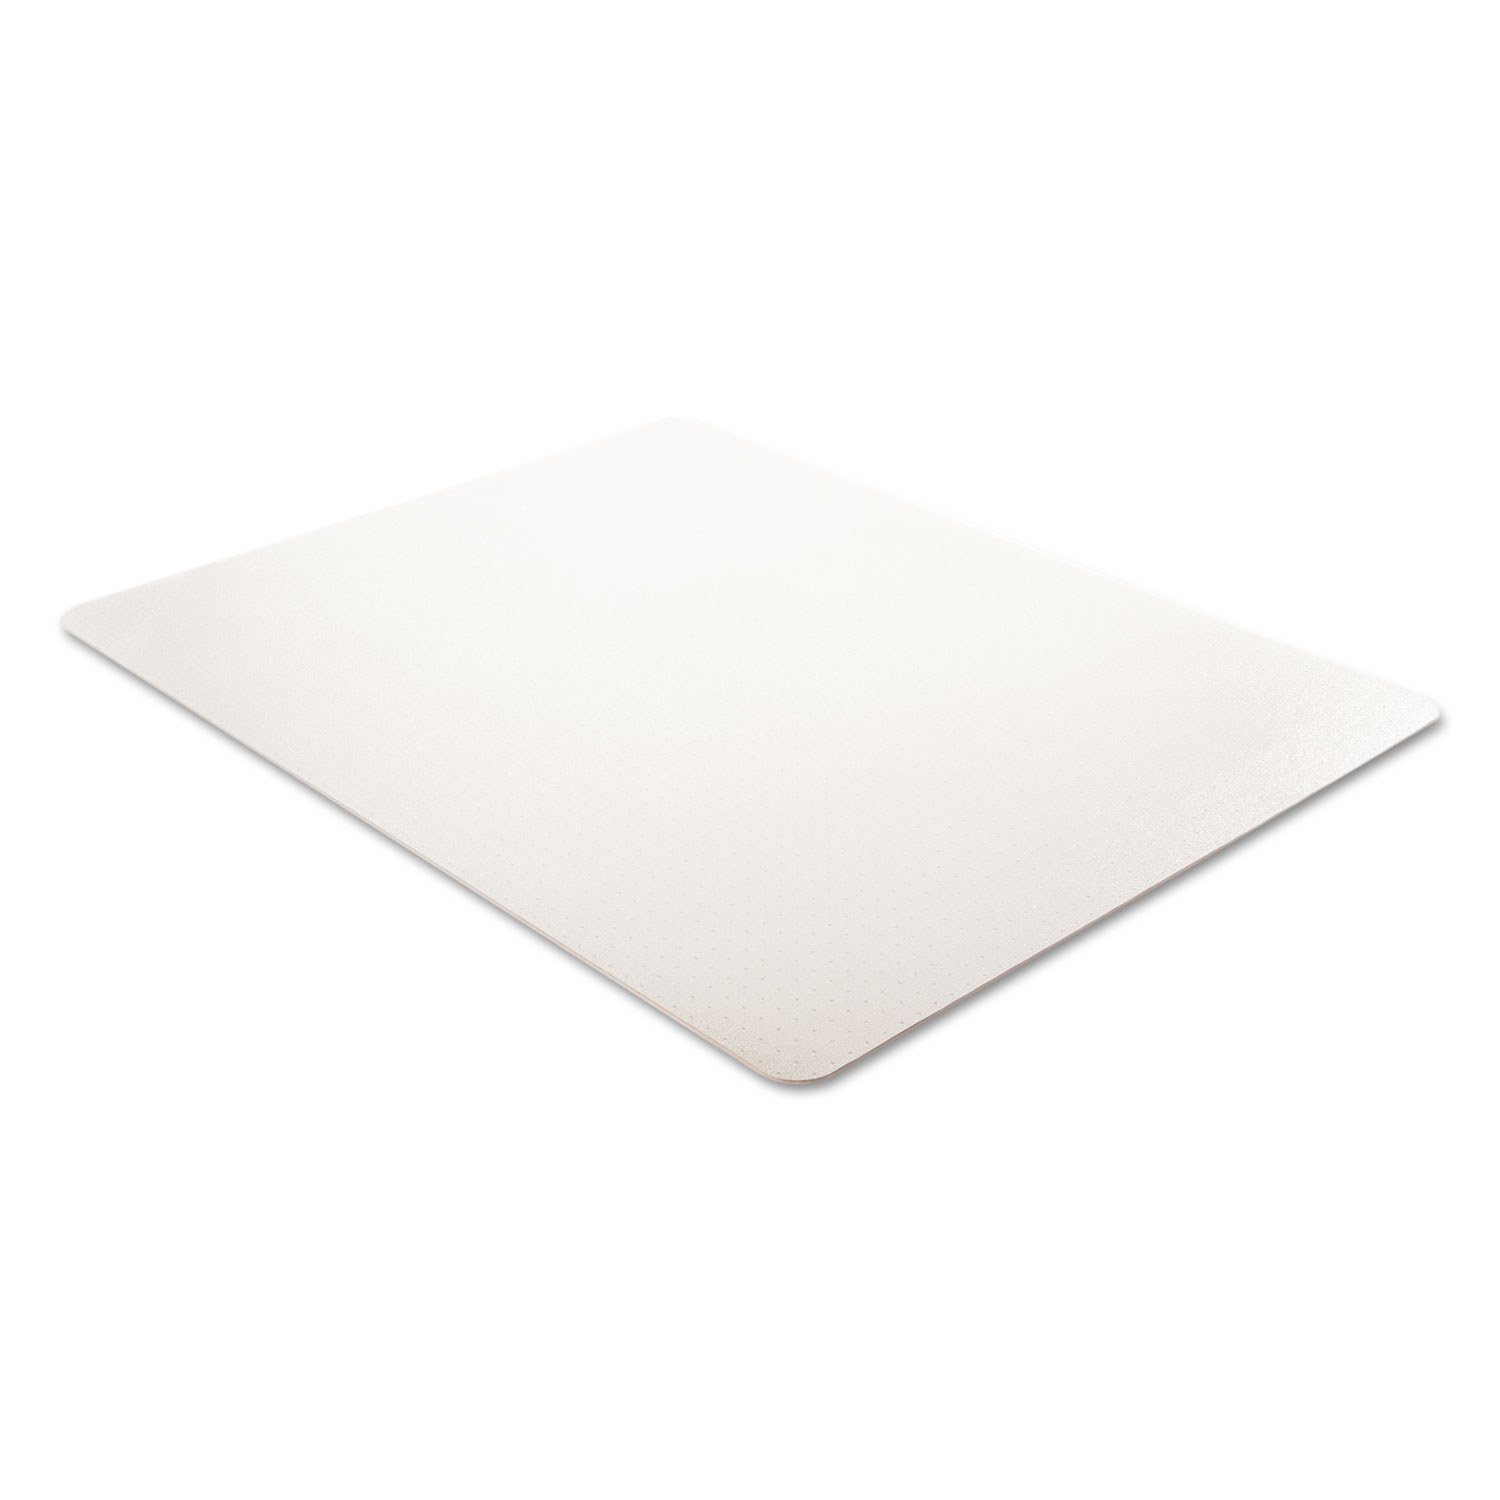 Economat Occasional Use Chair Mat By Deflecto 174 Defcm11442f